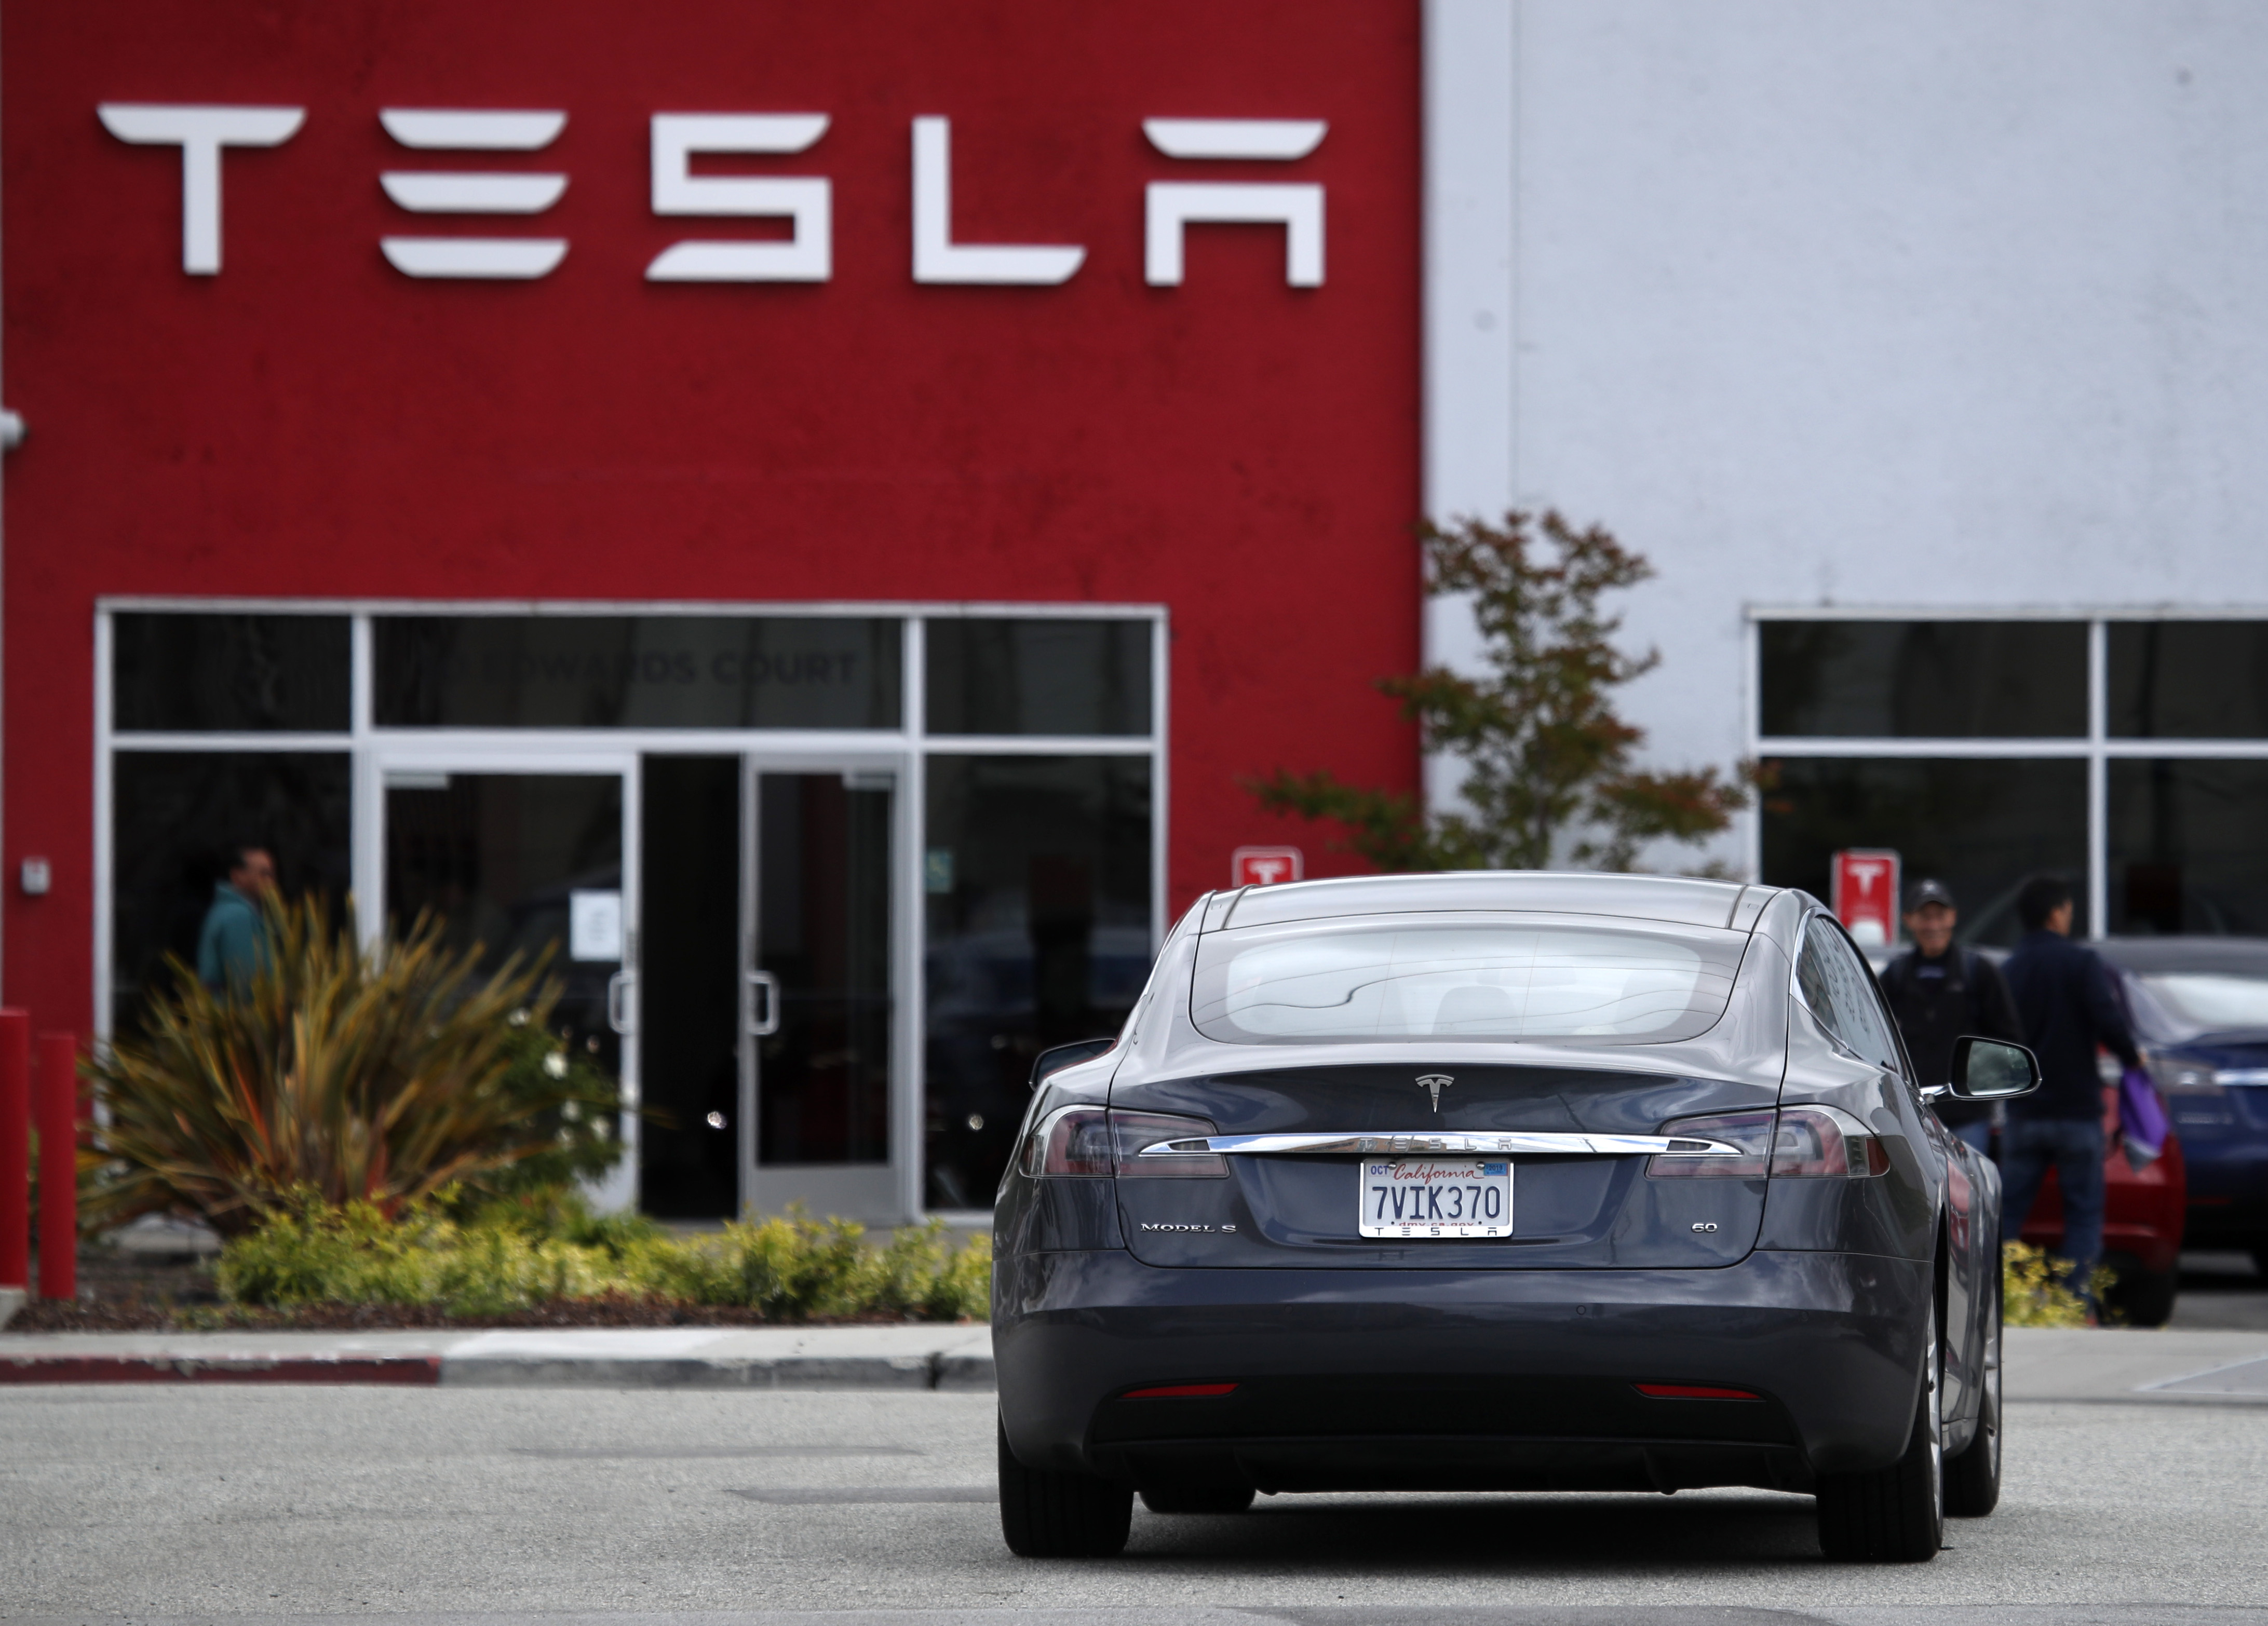 A Tesla Model S drives into the parking lot of a Tesla showroom and service center. (Photo by Justin Sullivan/Getty Images)